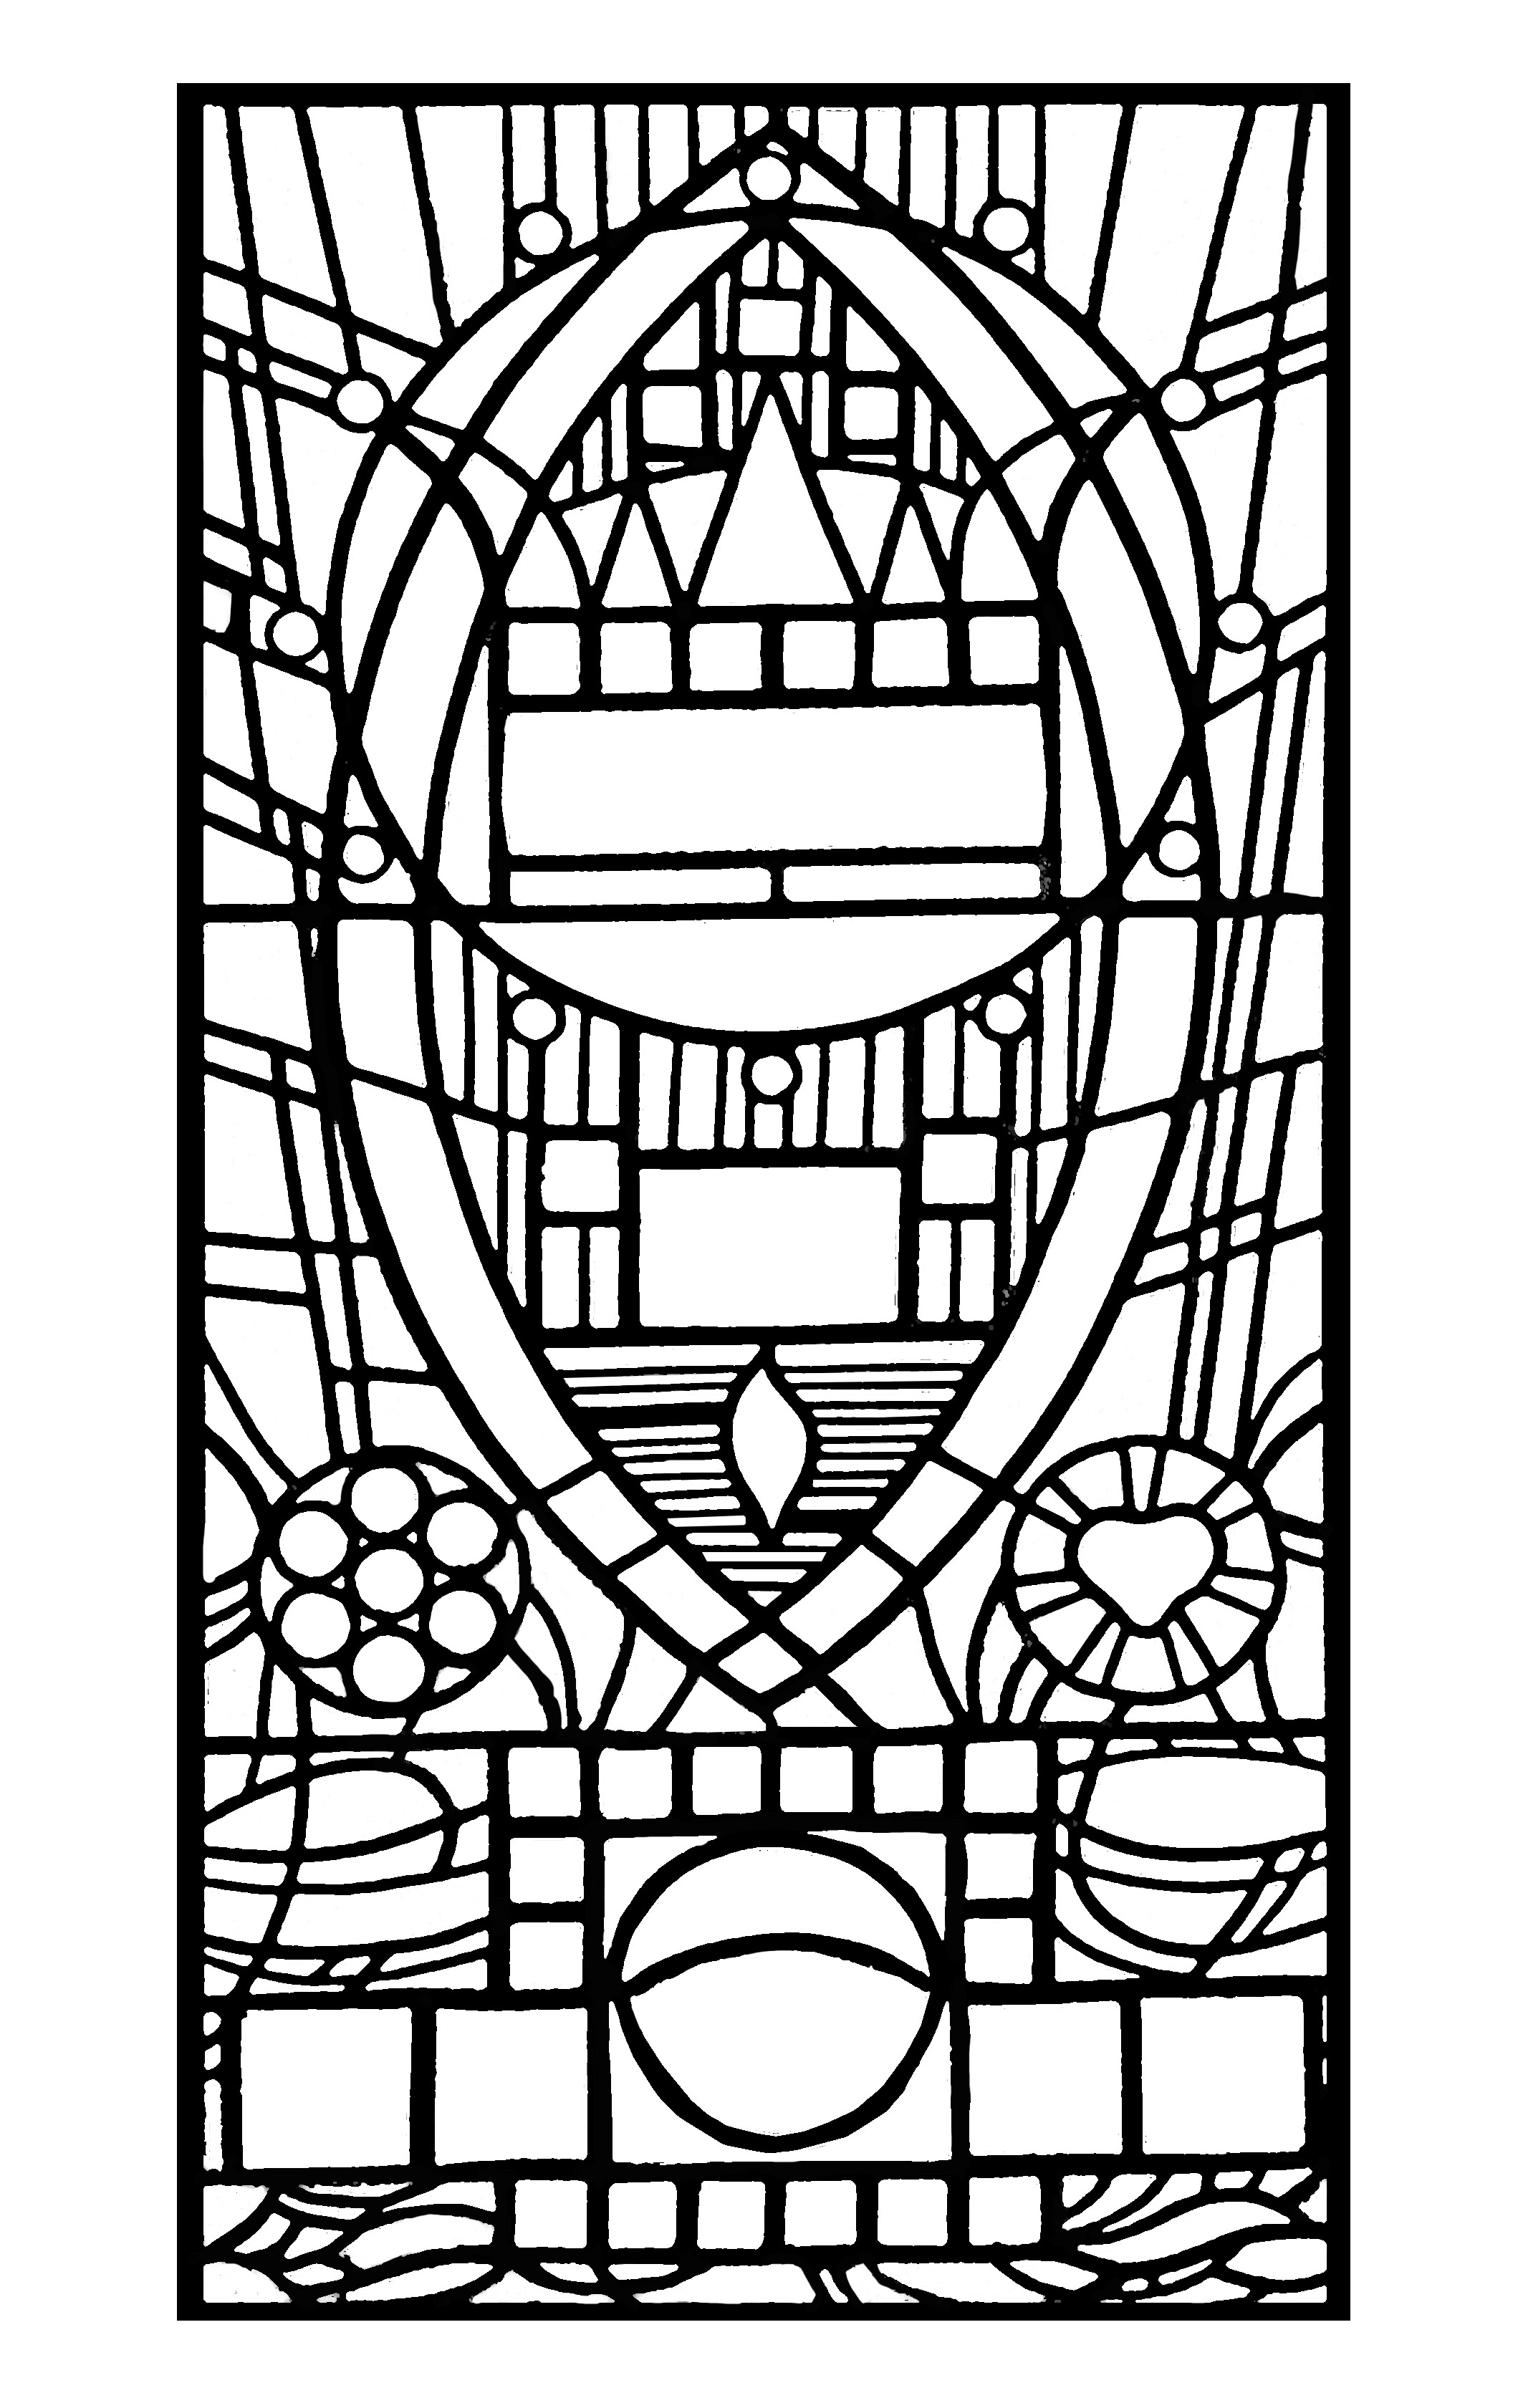 stained glass coloring page medieval stained glass coloring pages coloring home stained coloring page glass